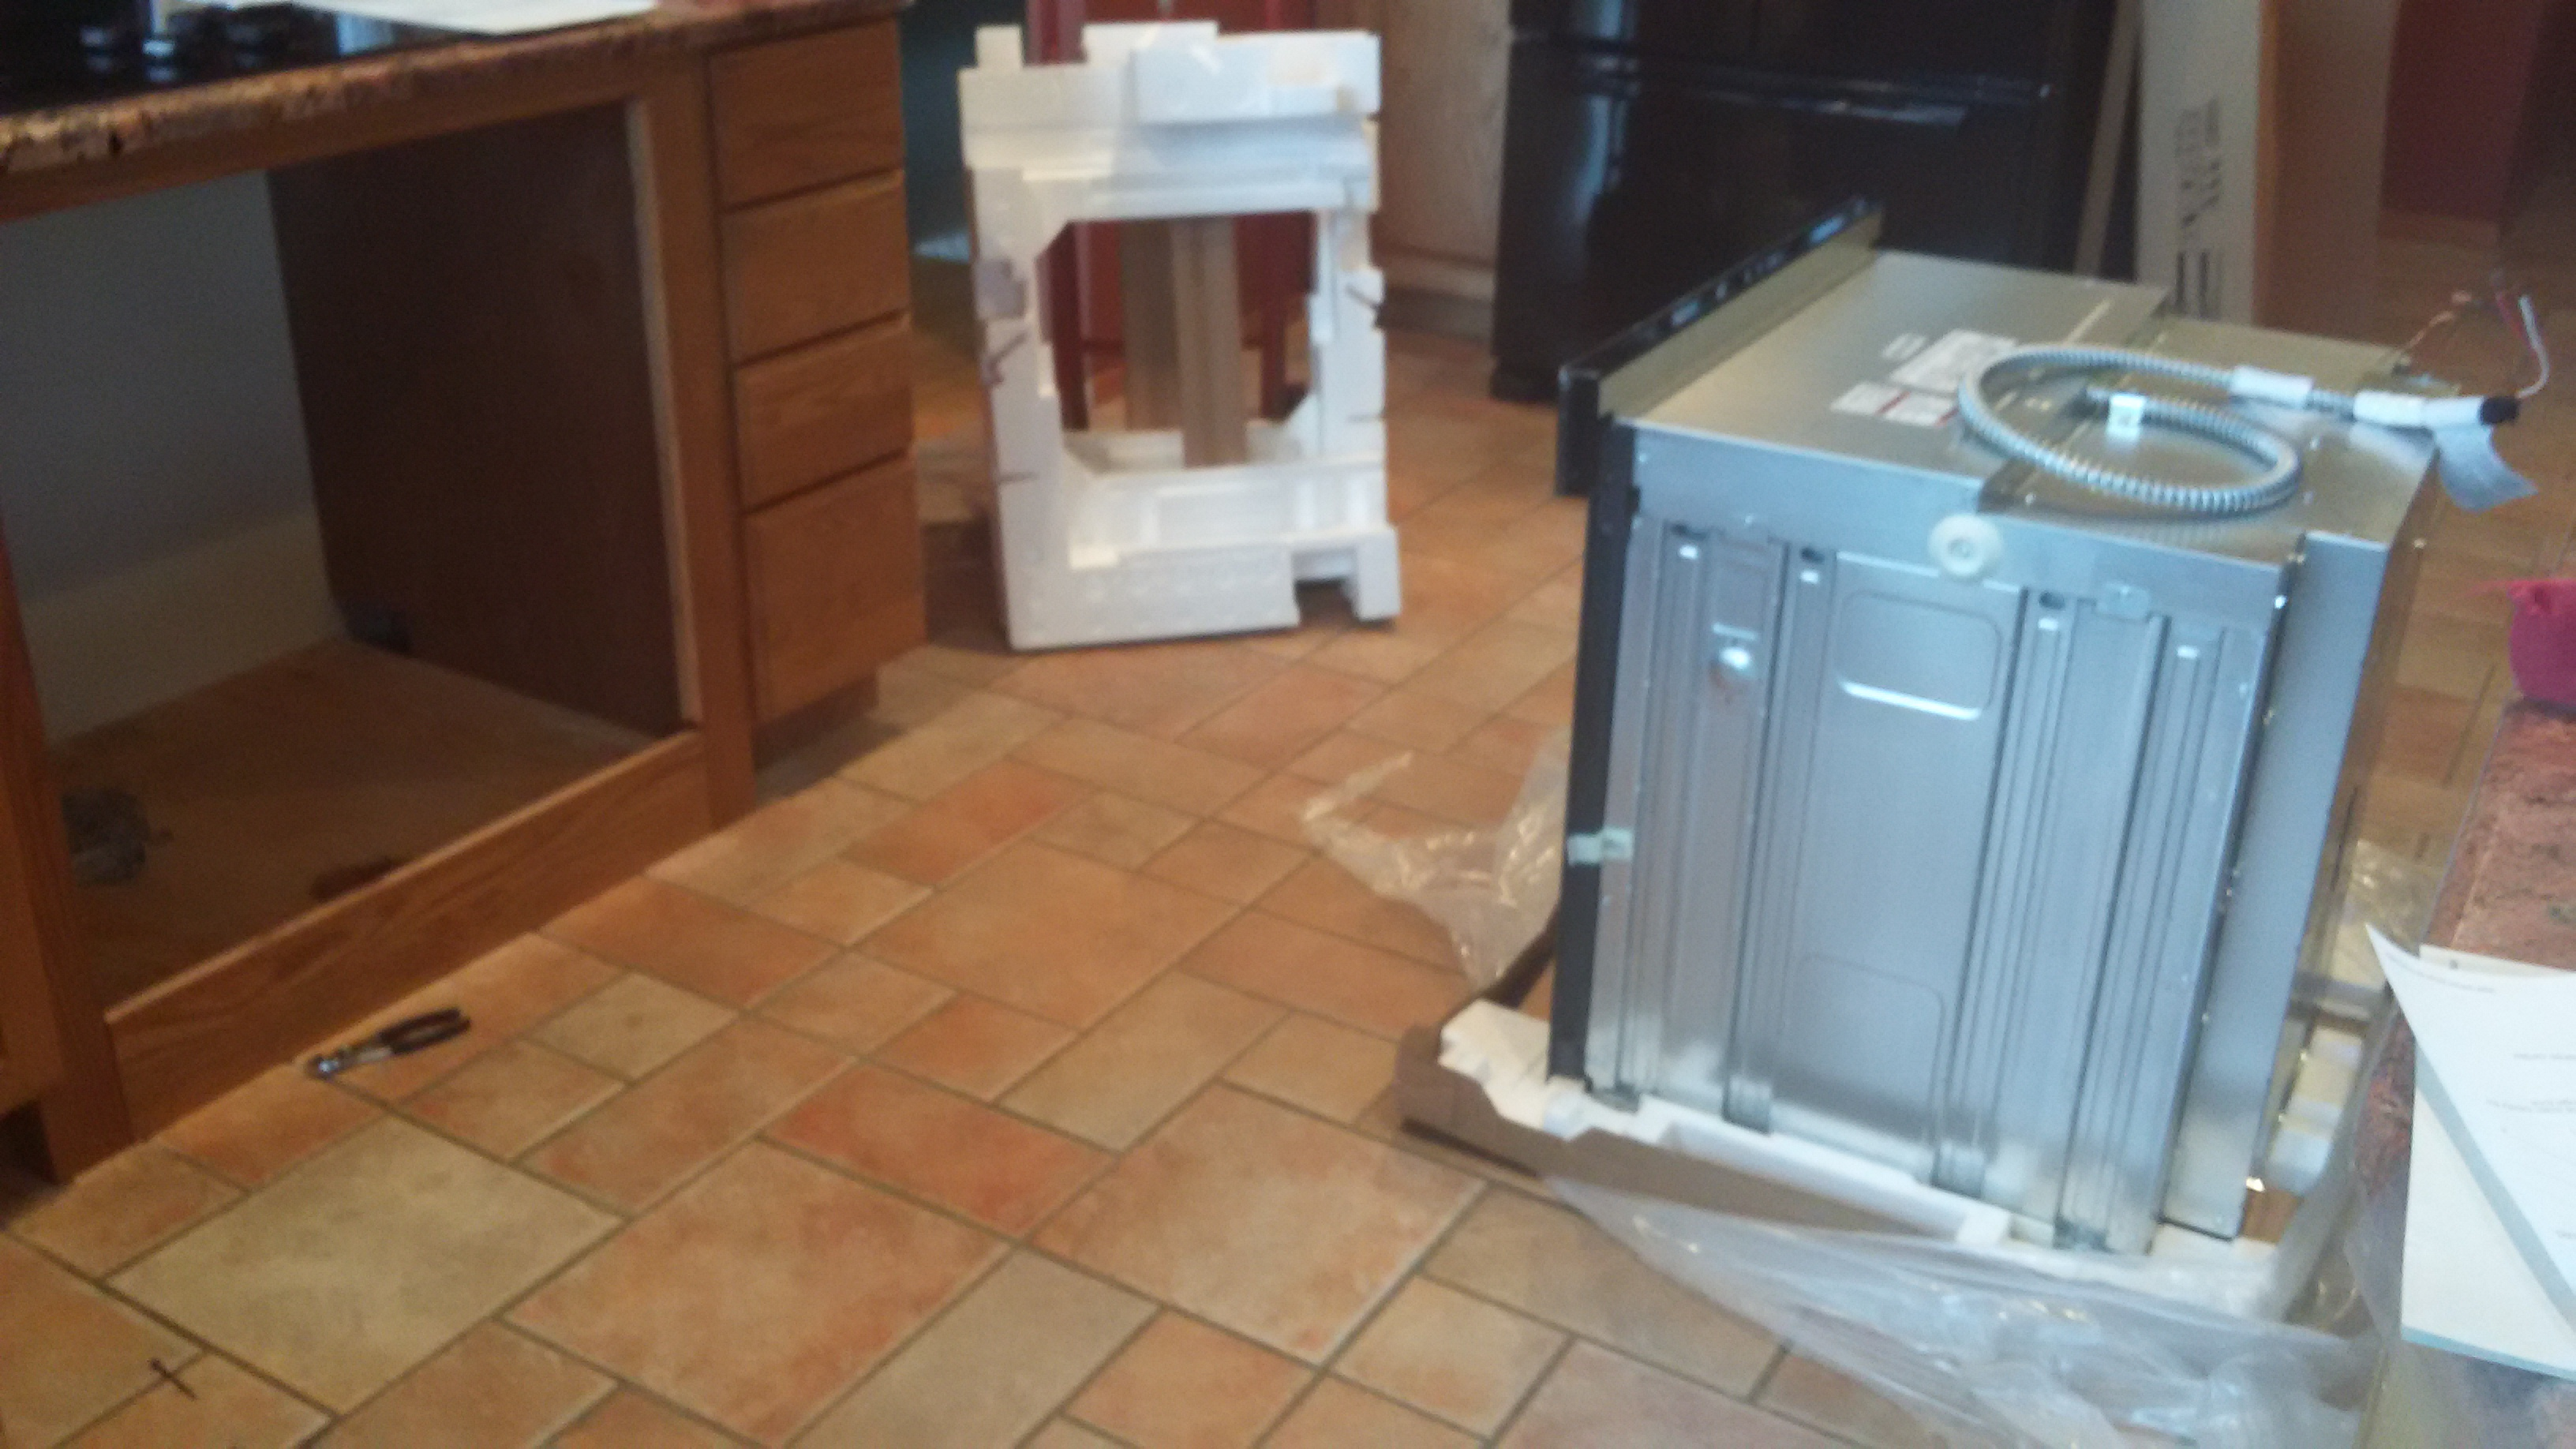 Maytag Customer Service Complaints Department | HissingKitty com